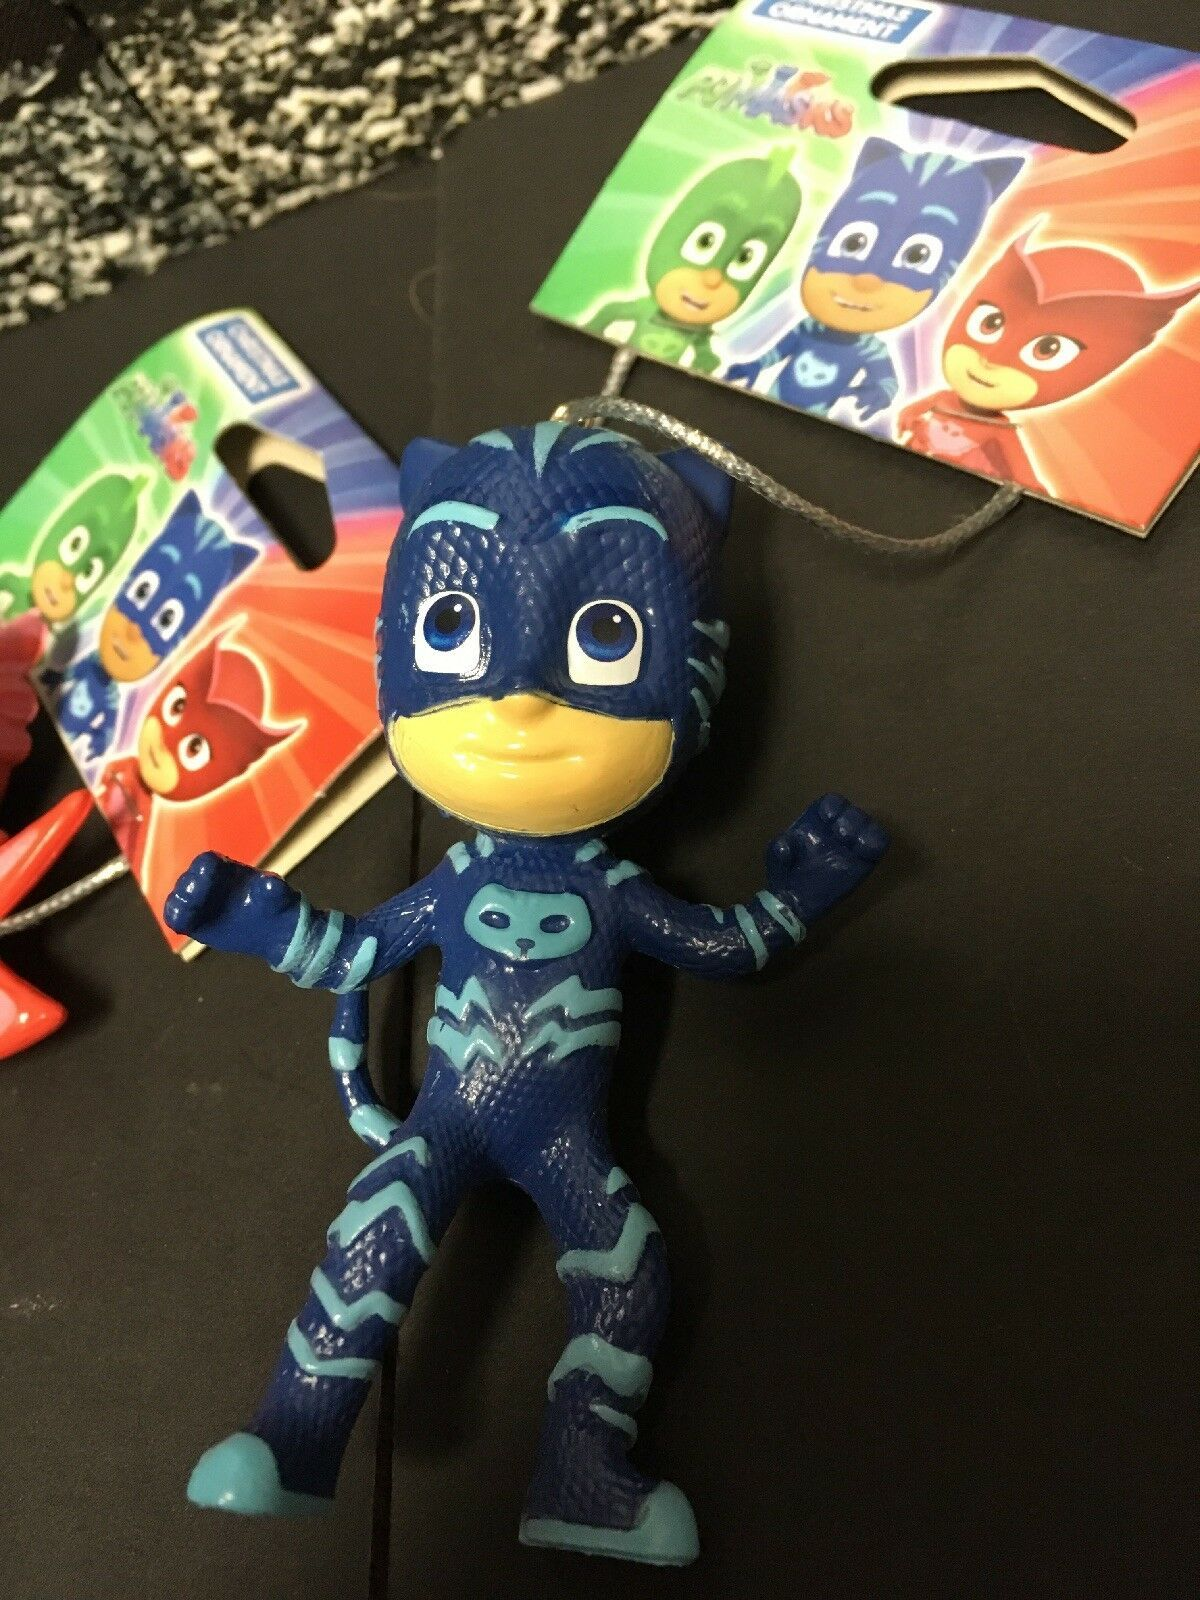 New PJ MASKS Christmas Ornaments Set of 3 Owlette Gekko Catboy by Kurt Adler